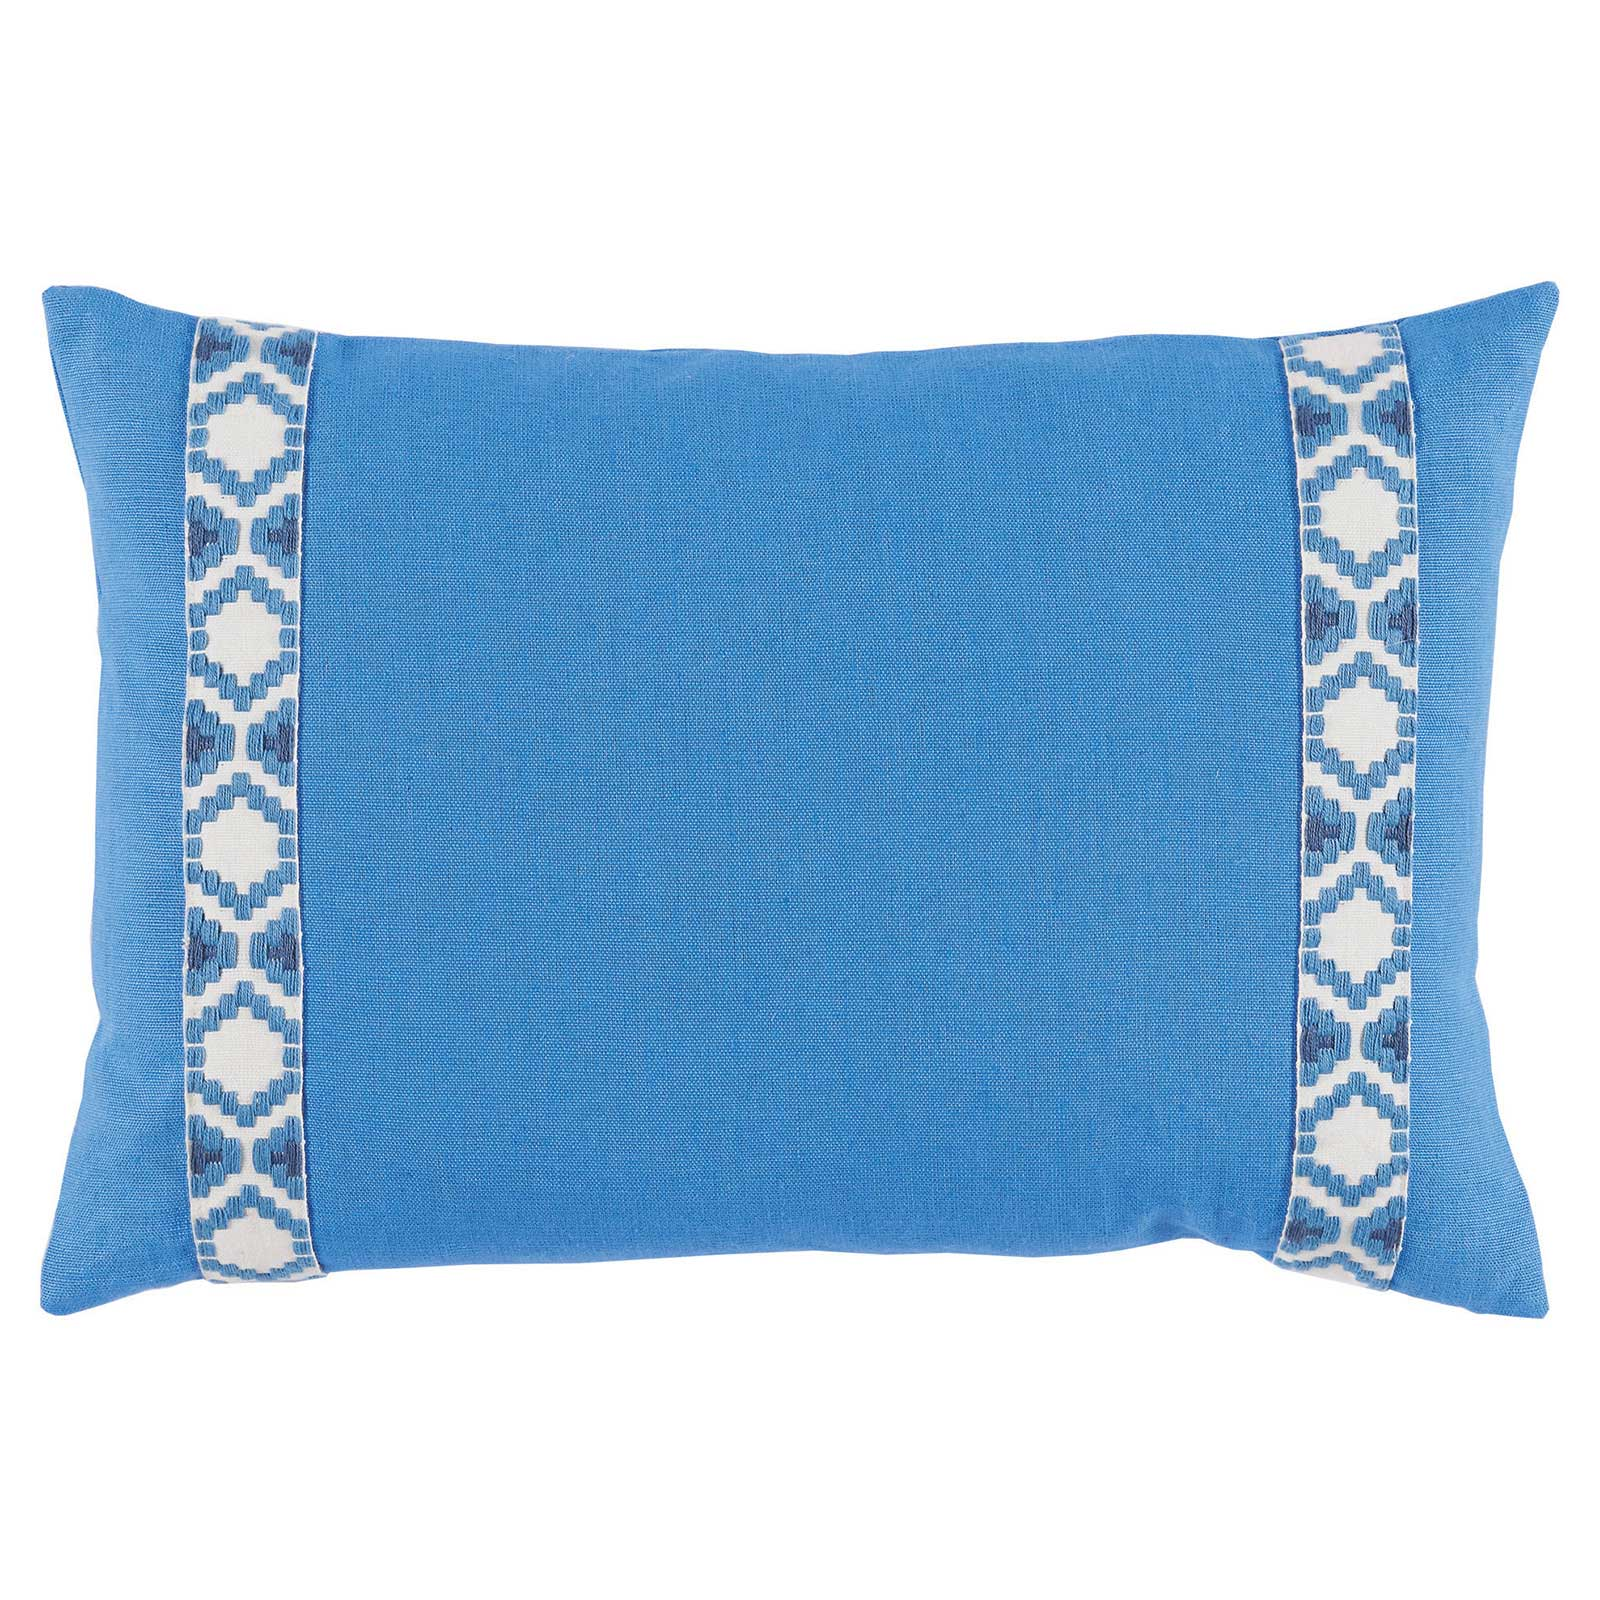 Kaia Global Bright Blue Linen Trim Band Pillow - 13x19